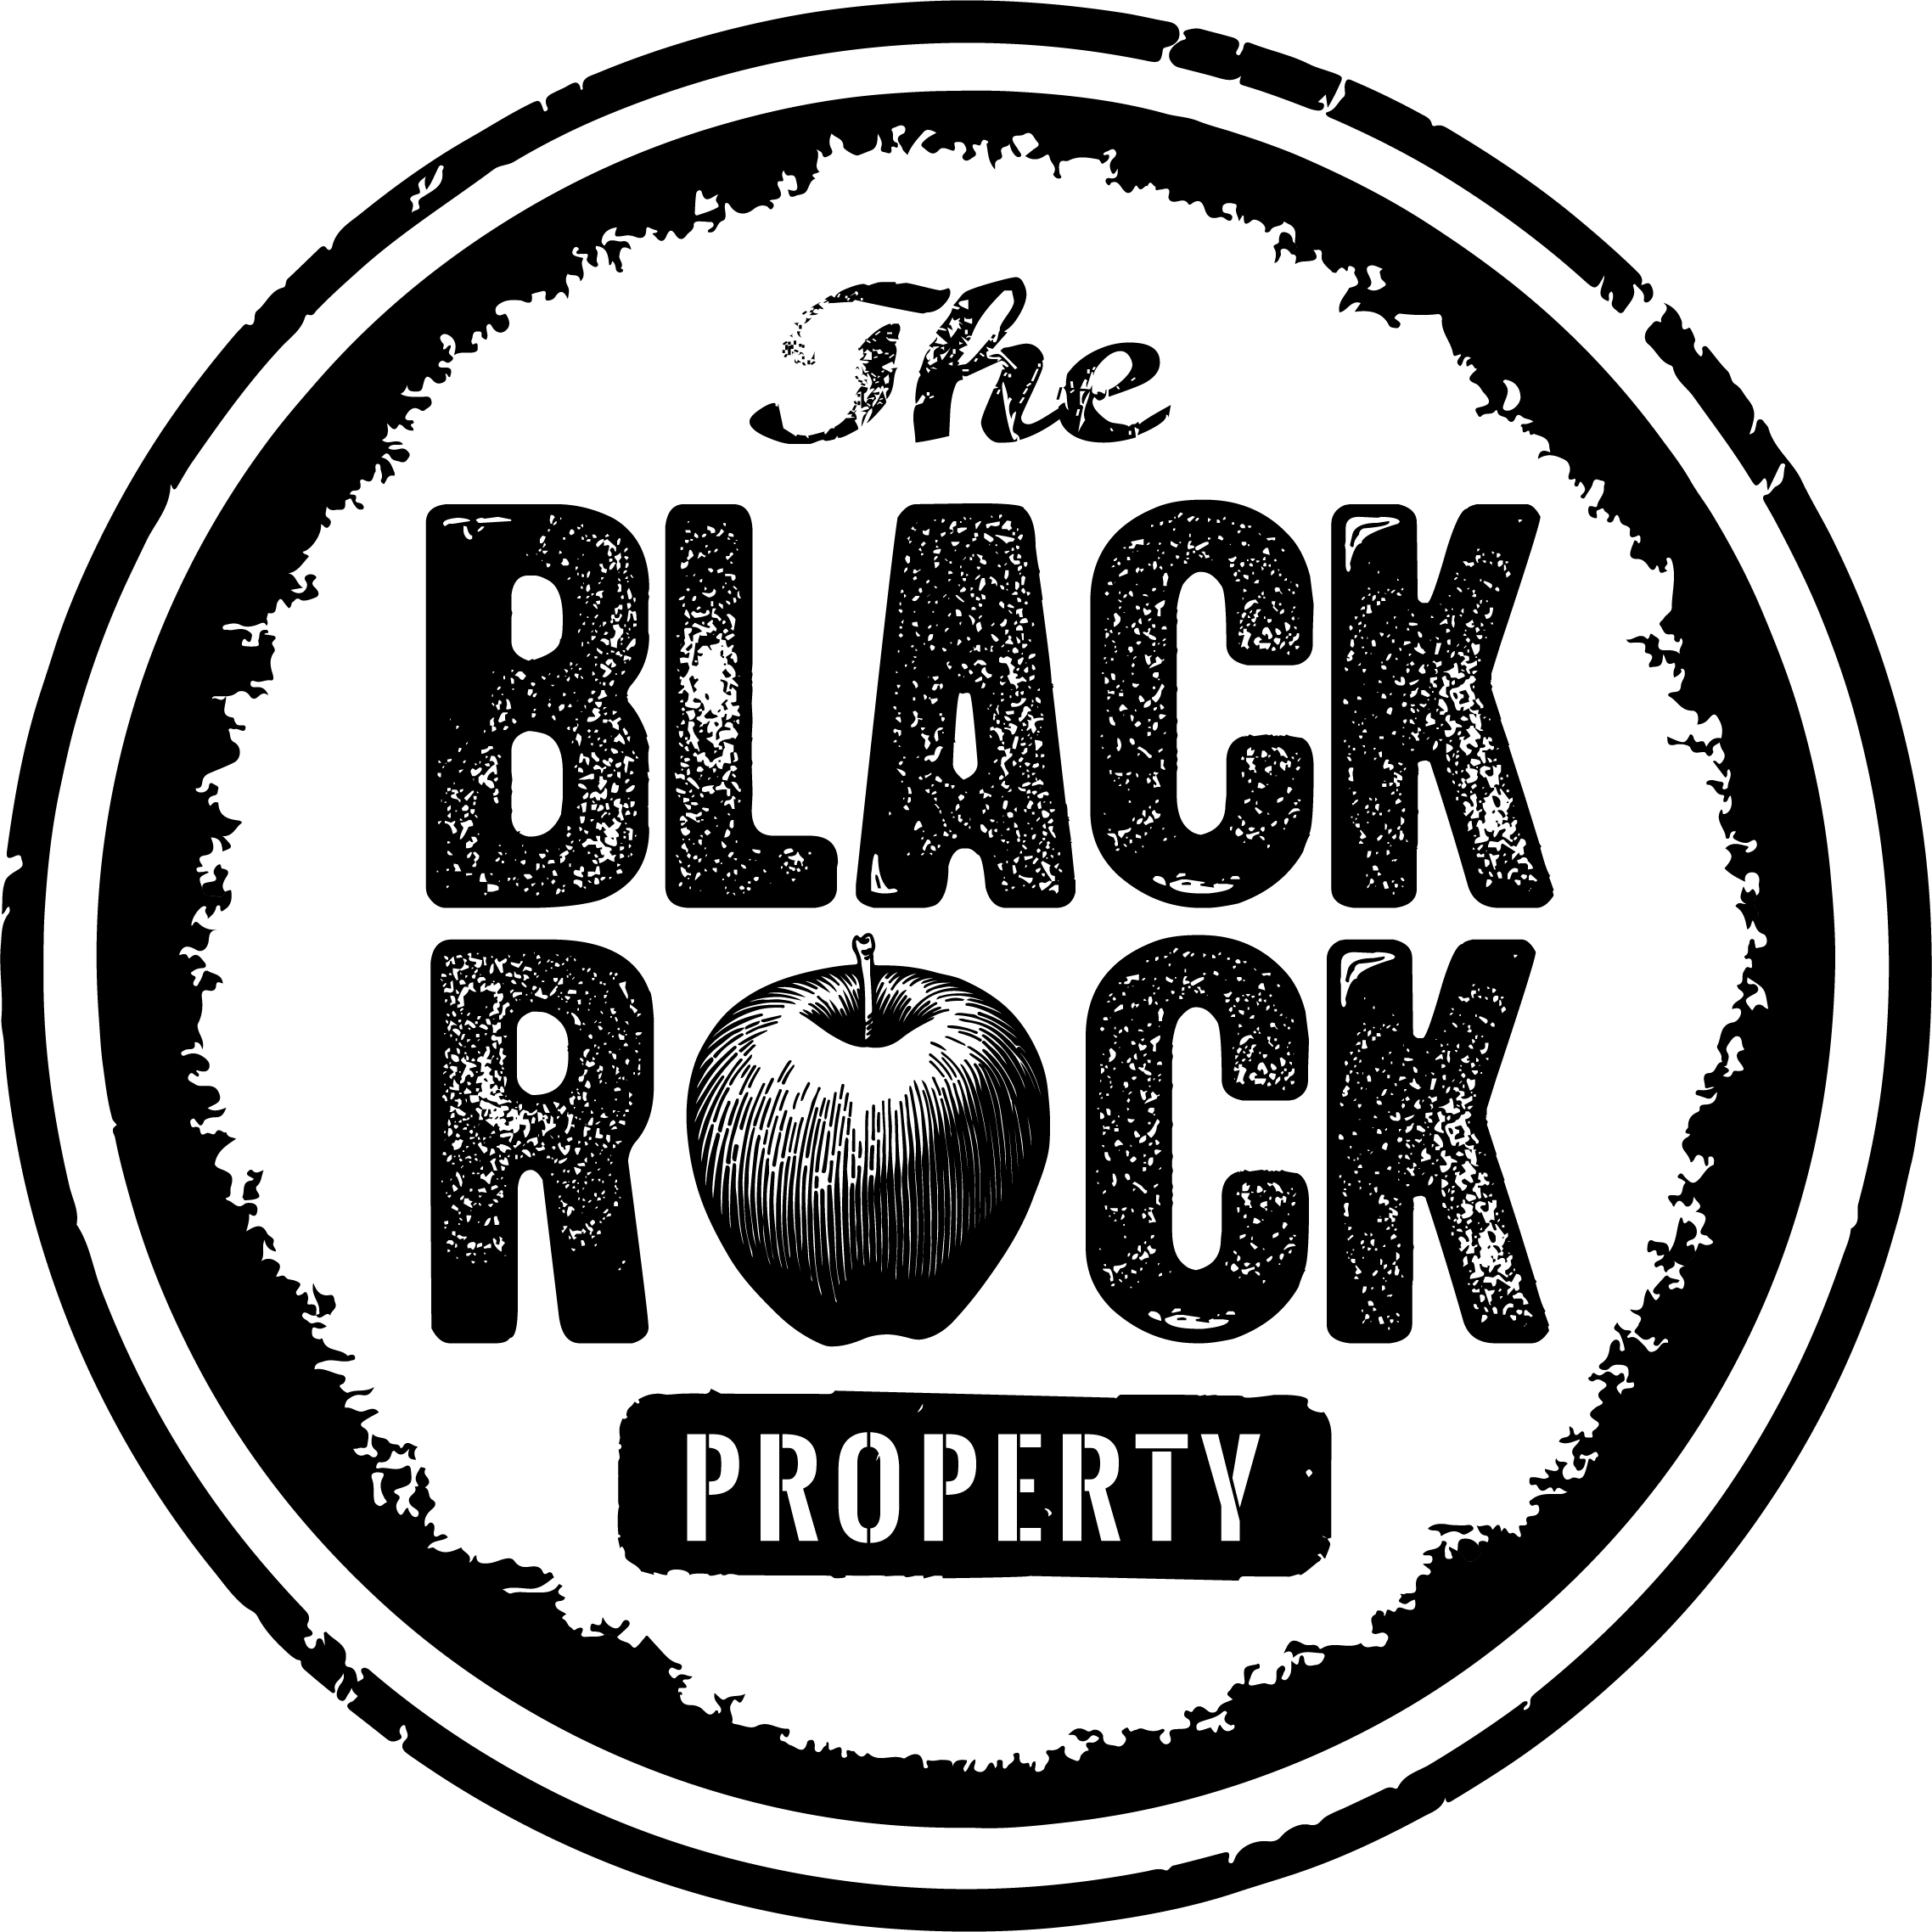 The Blackrock Property